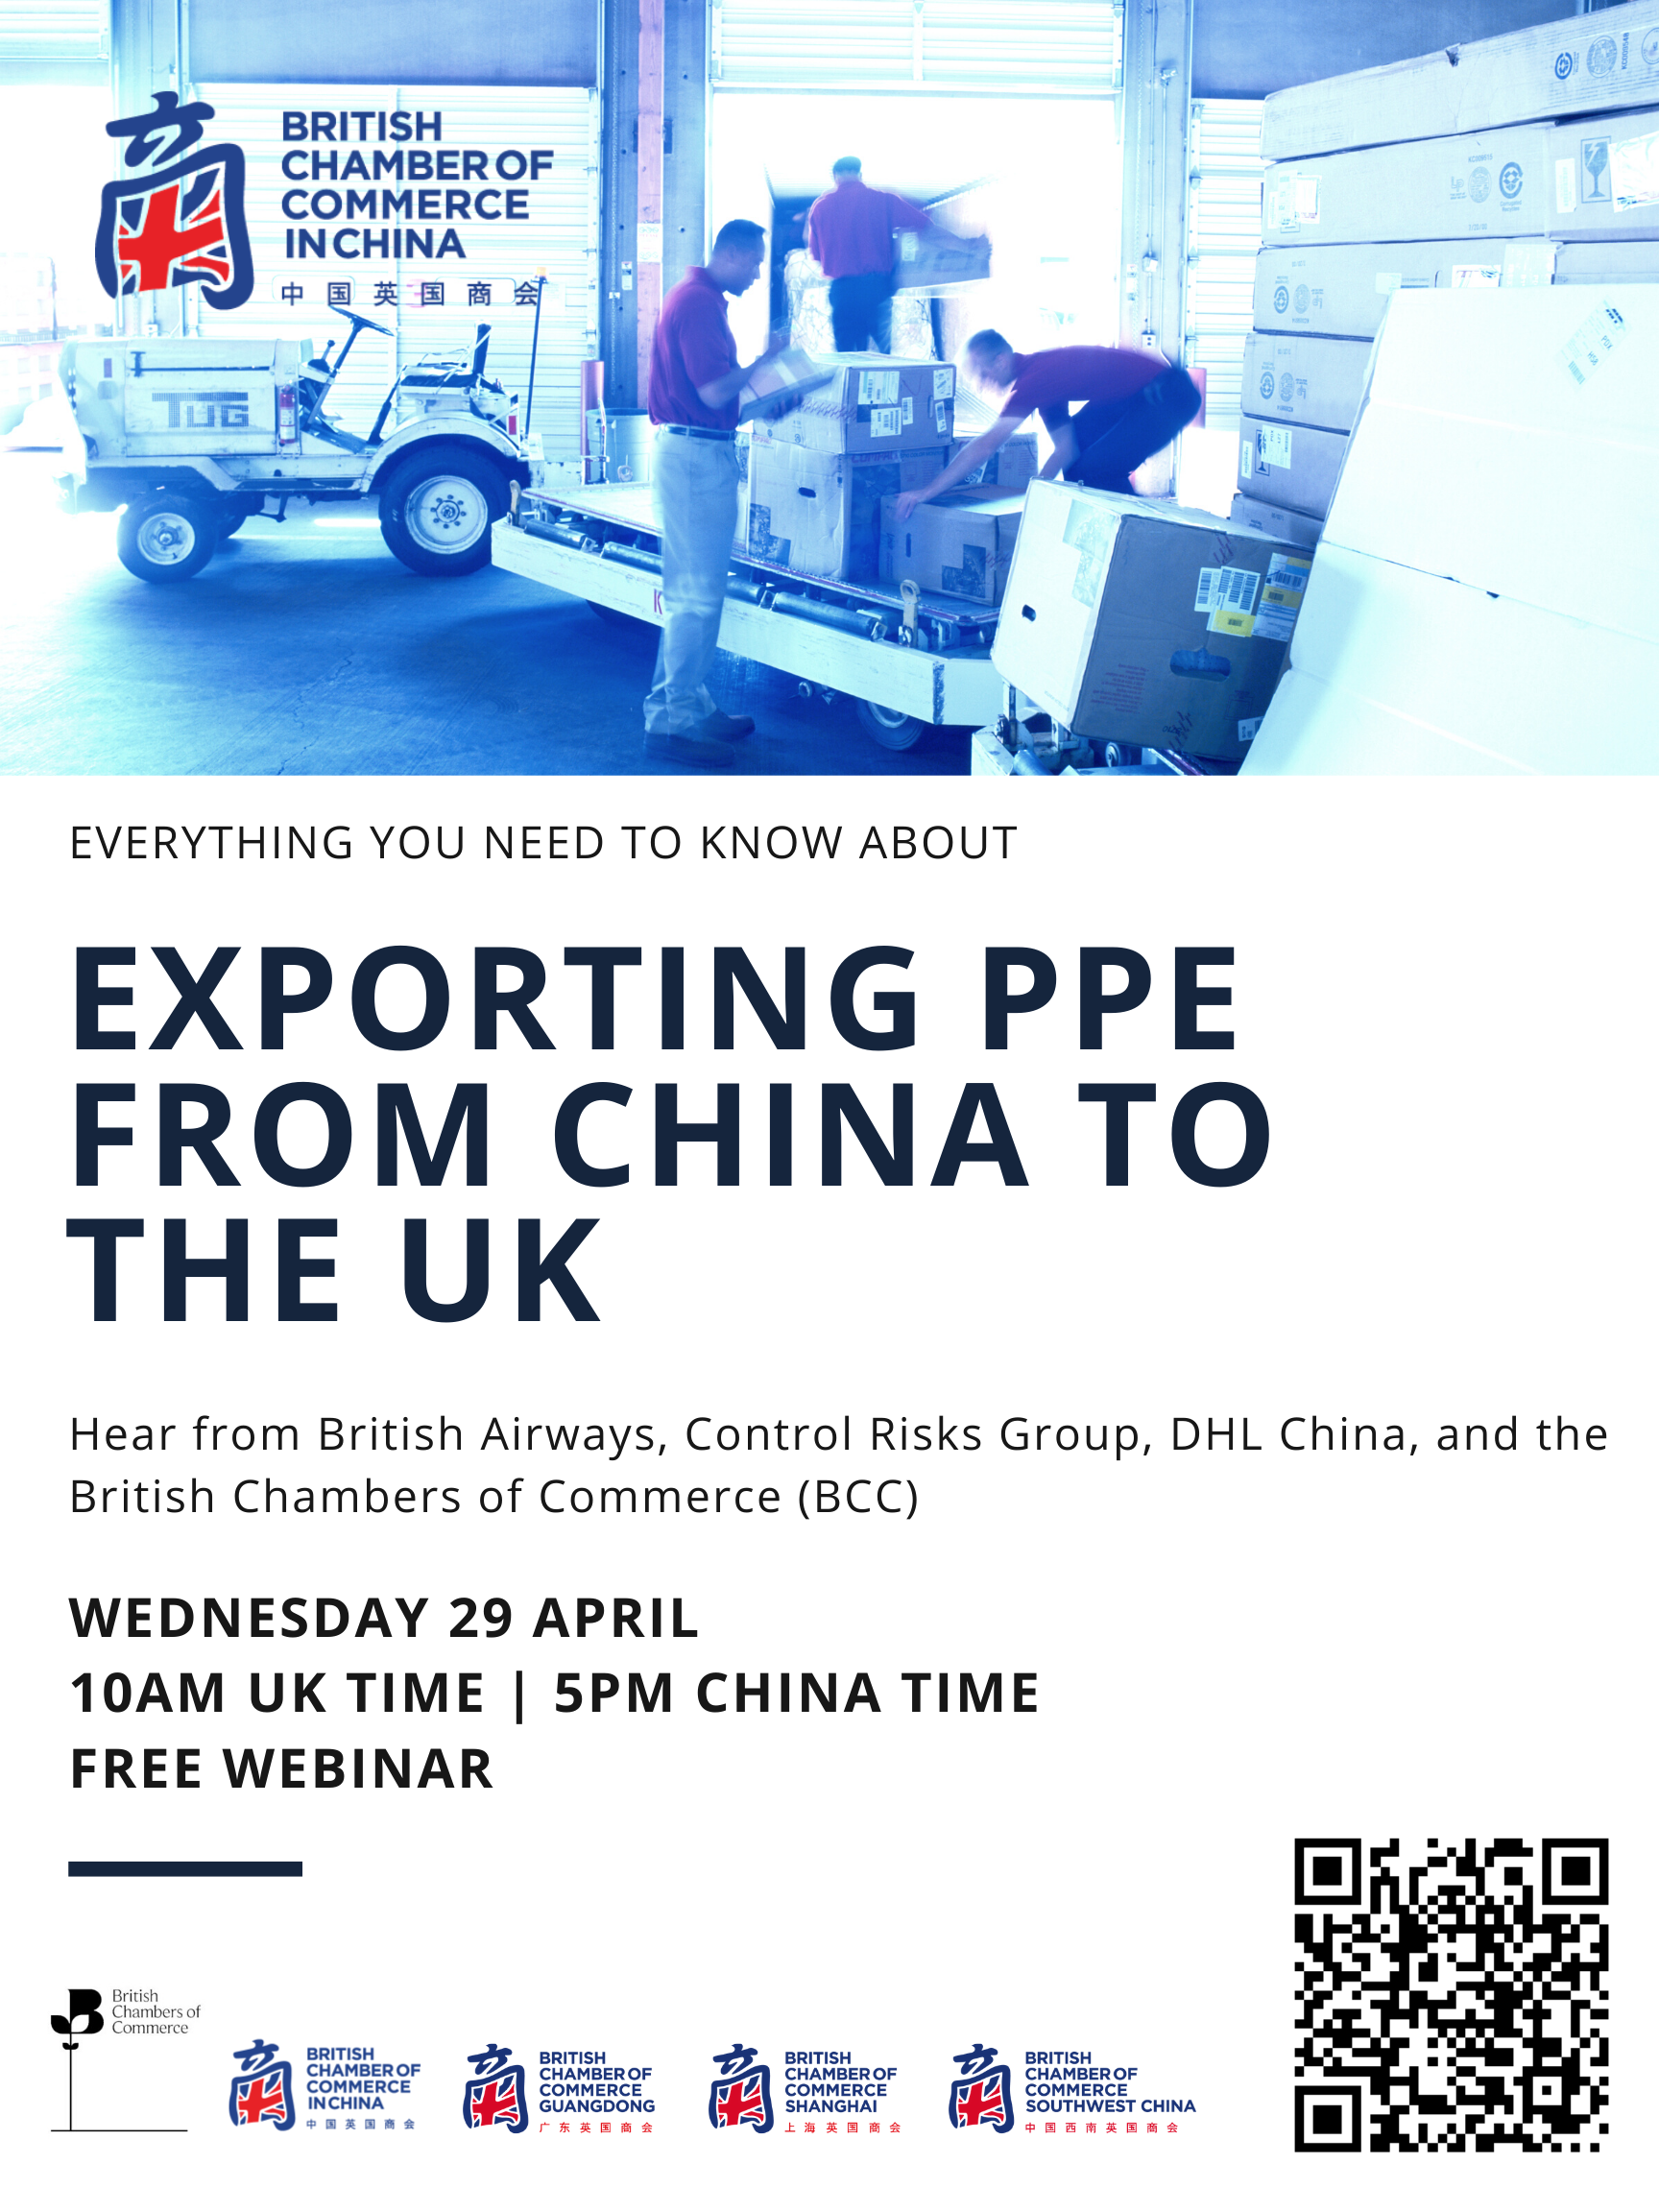 Exporting PPE from China to the UK